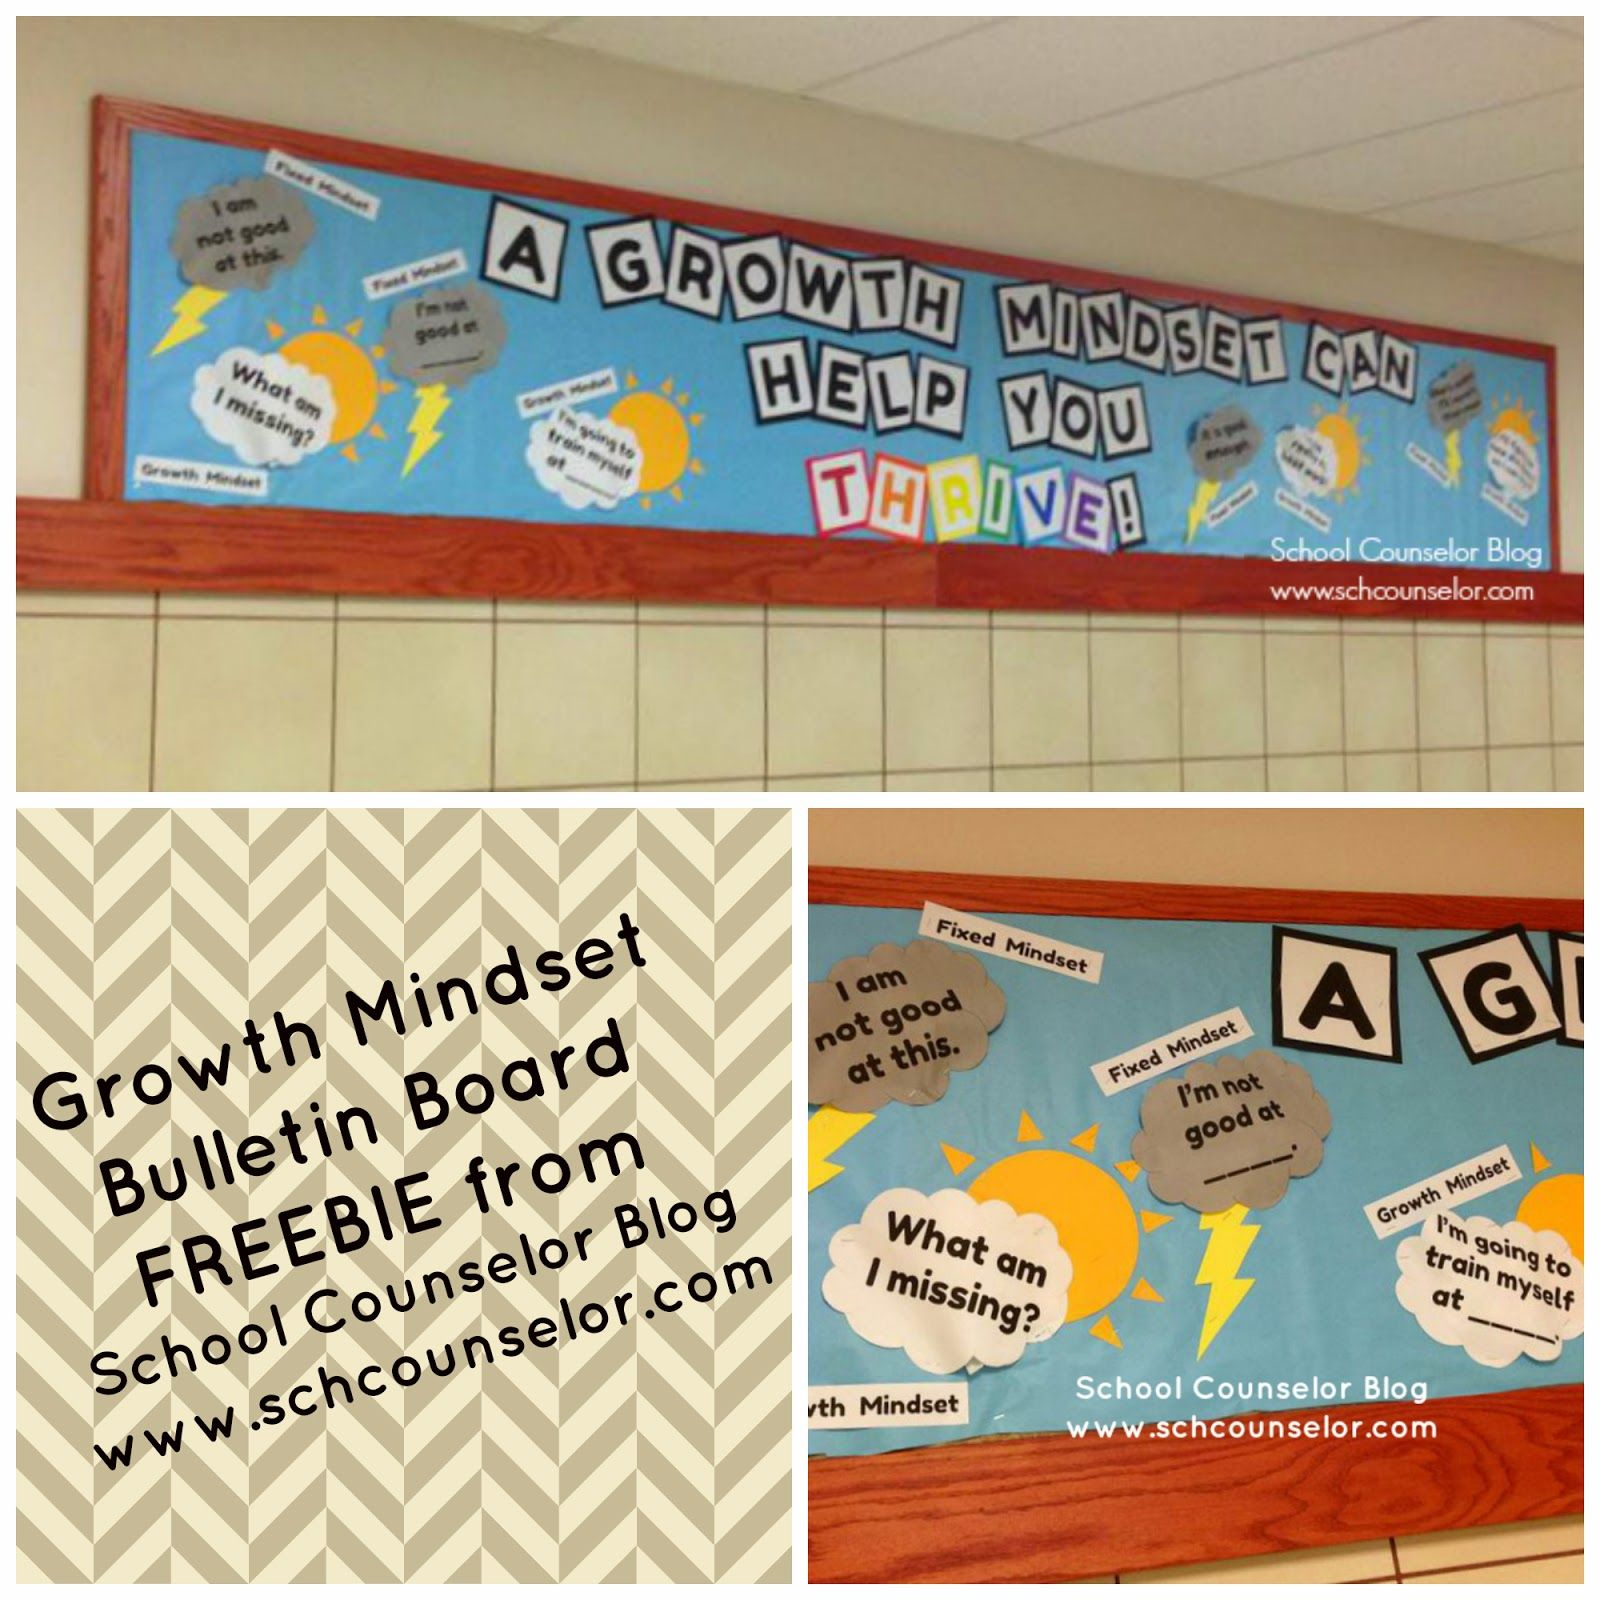 Bulletin Board Ideas For Questions: School Counselor Blog: A Growth Mindset Can Help You